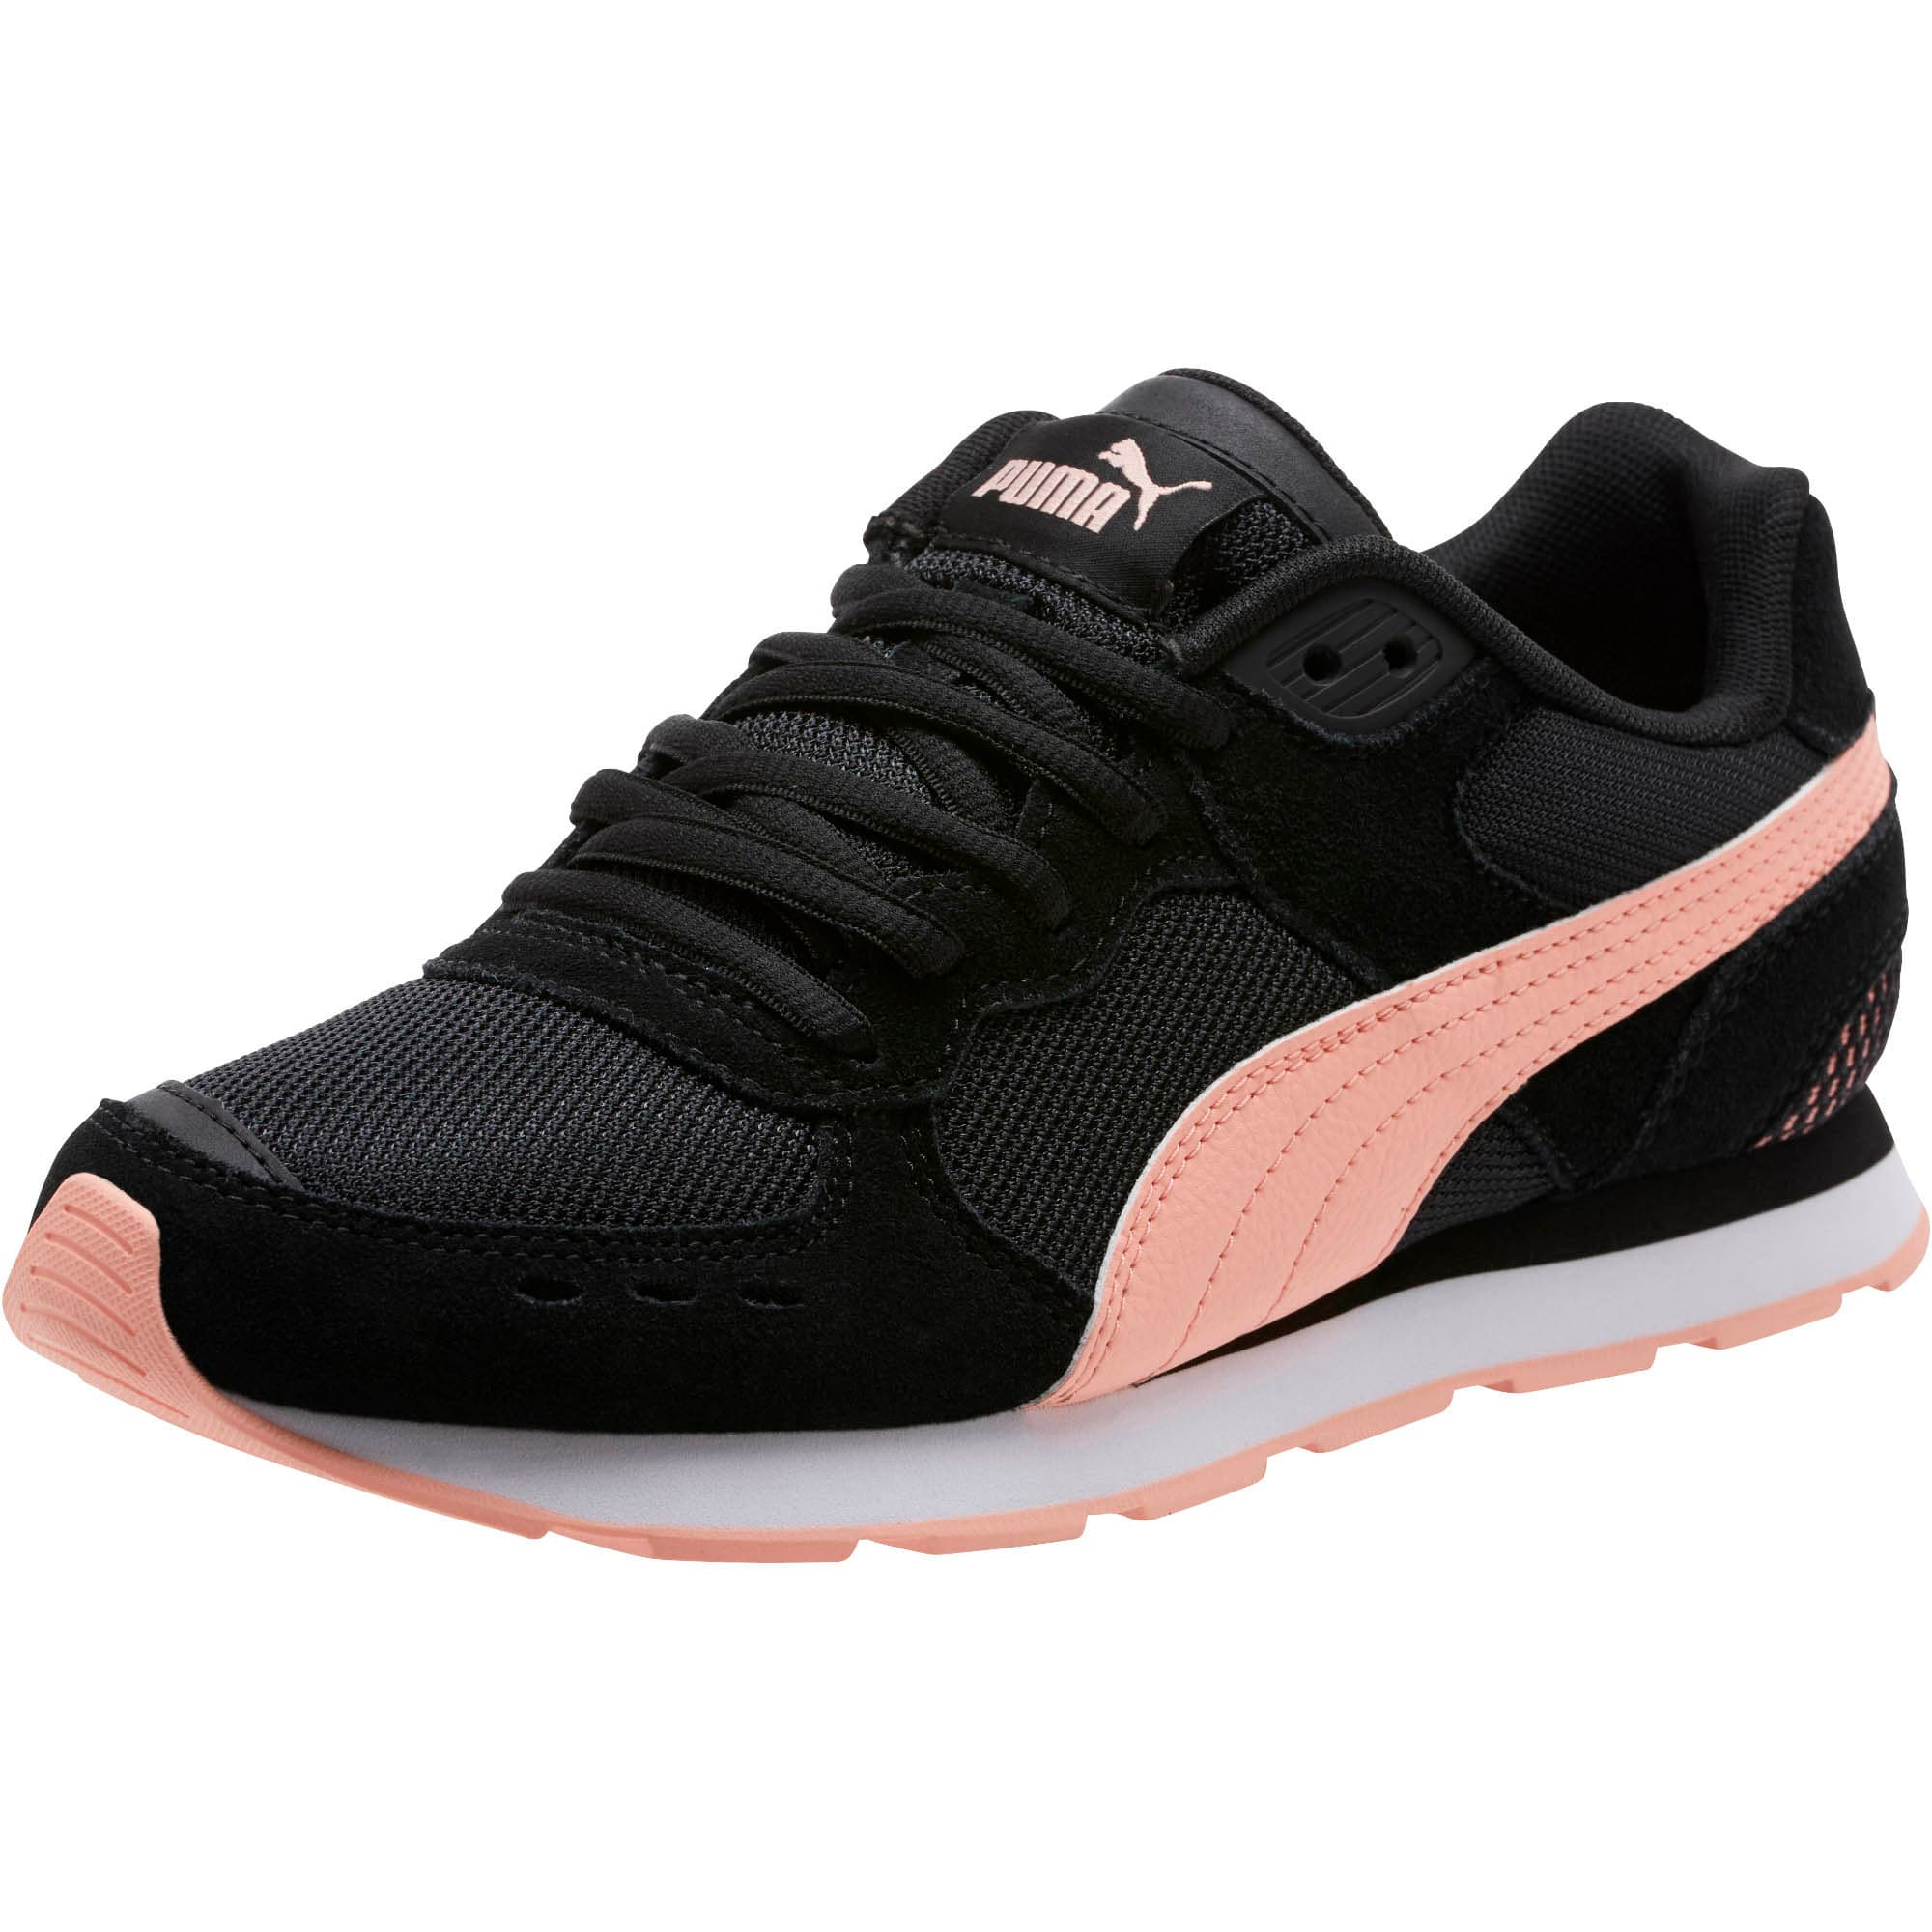 Thumbnail 1 of Vista Women's Sneakers, Puma Black-Peach Bud, medium